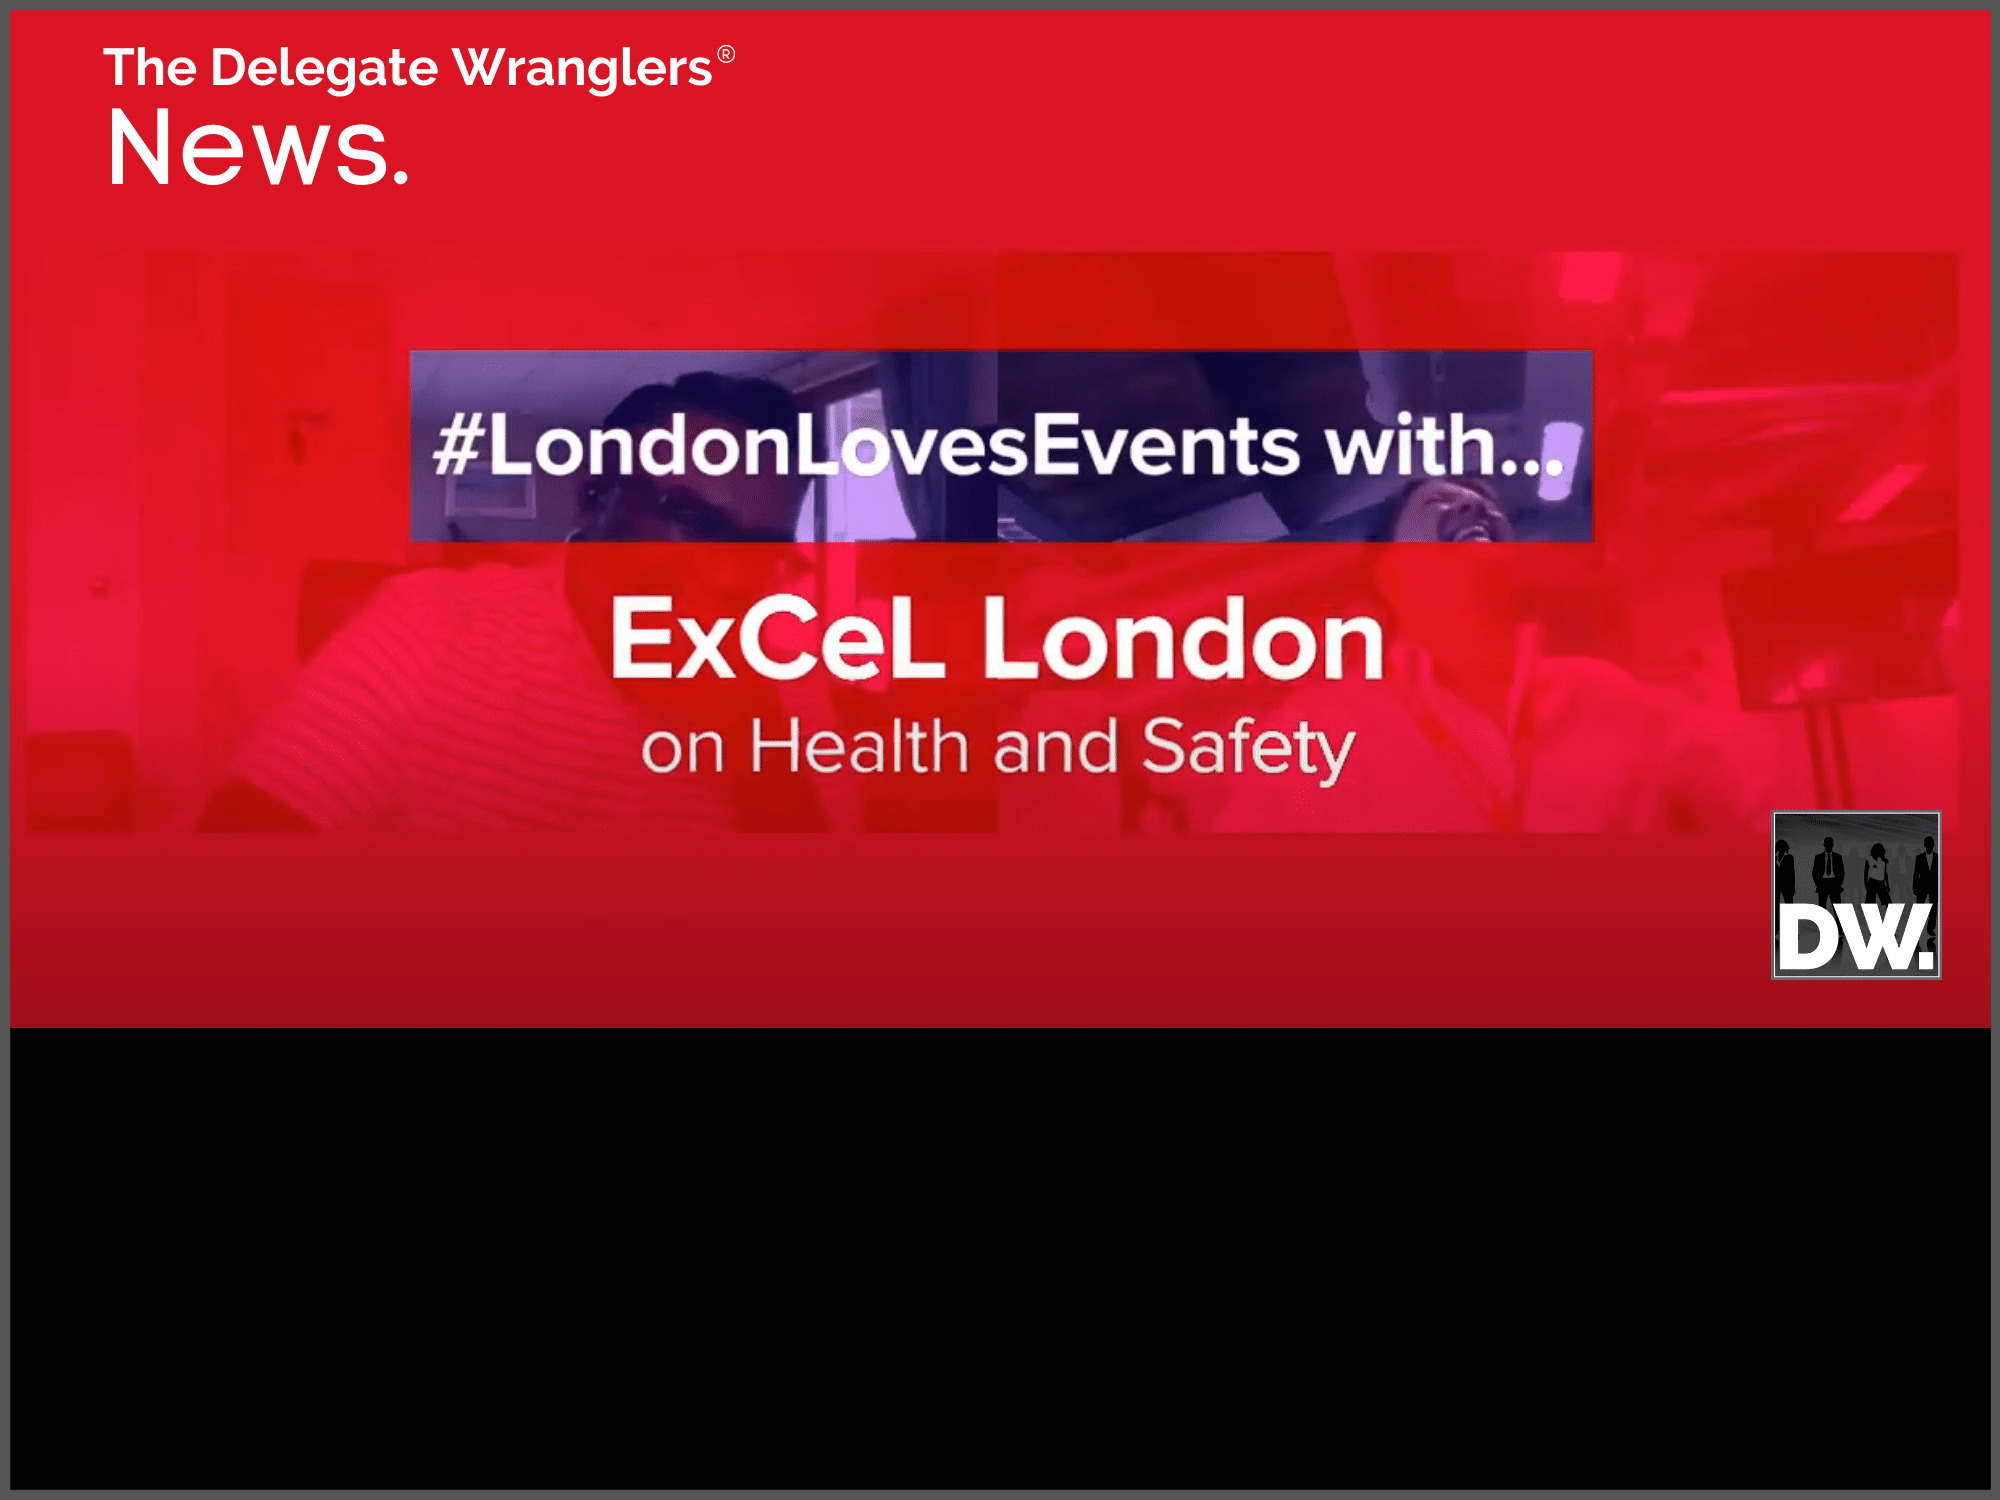 London Convention Bureau launches their first #LondonLovesEvents with... video series.